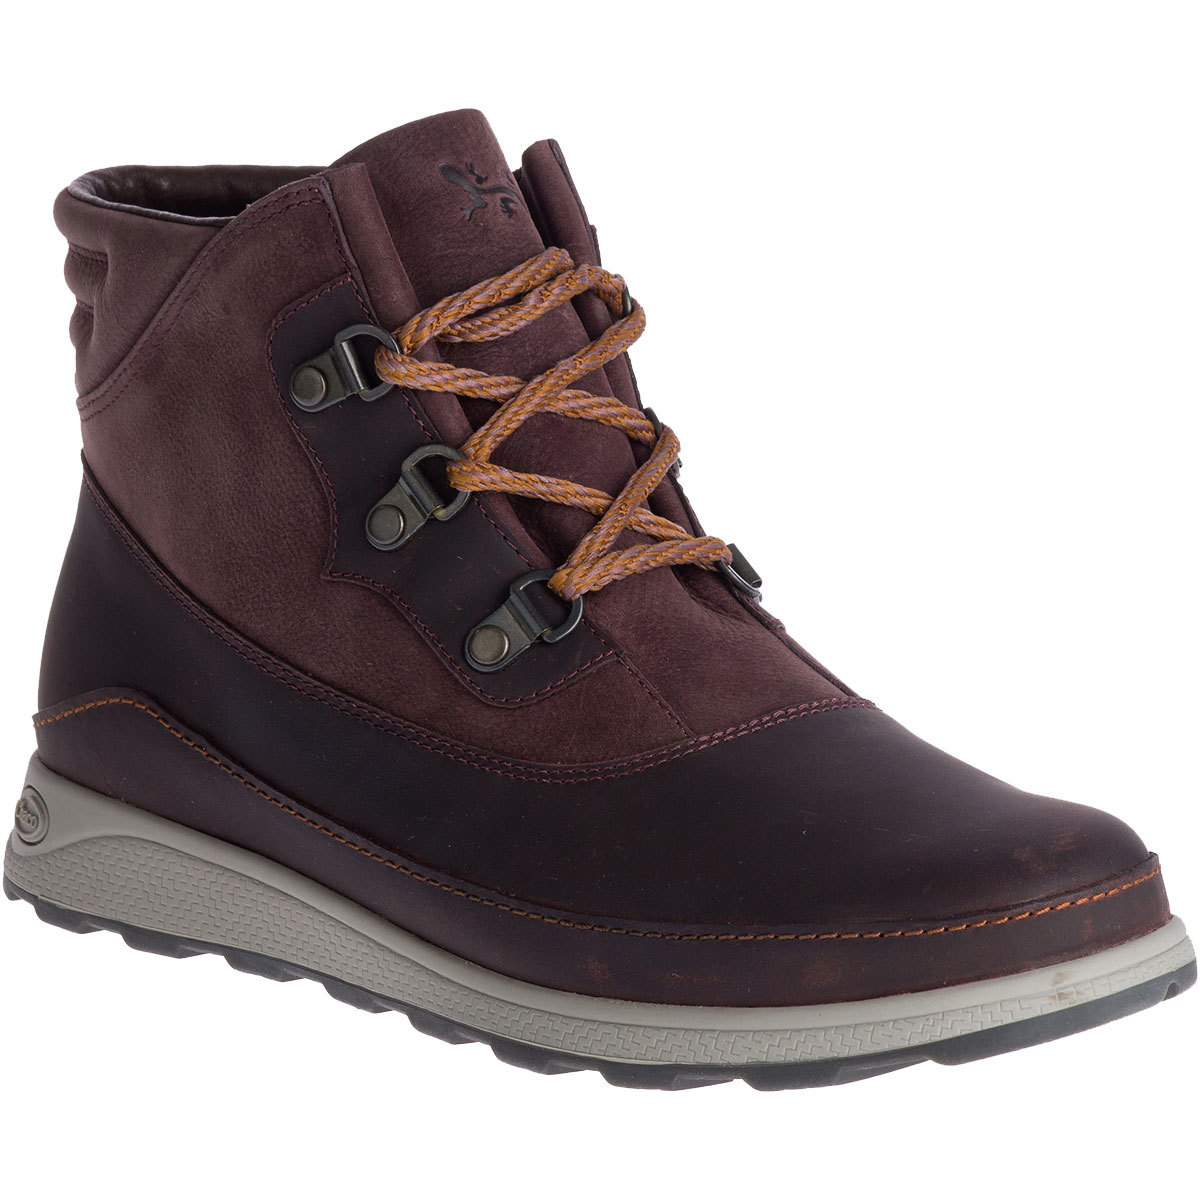 Chaco Women's Ember Mid Storm Boots - Brown, 9